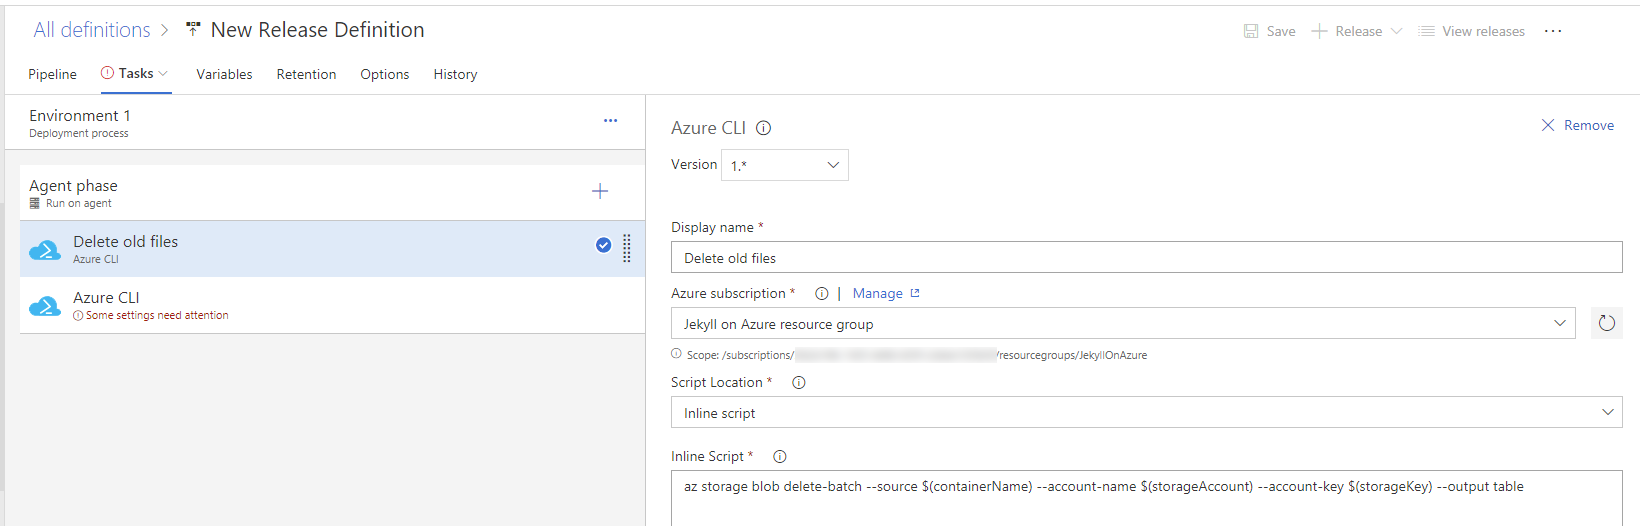 Delete Azure Blob files from VSTS release definition using Azure CLI